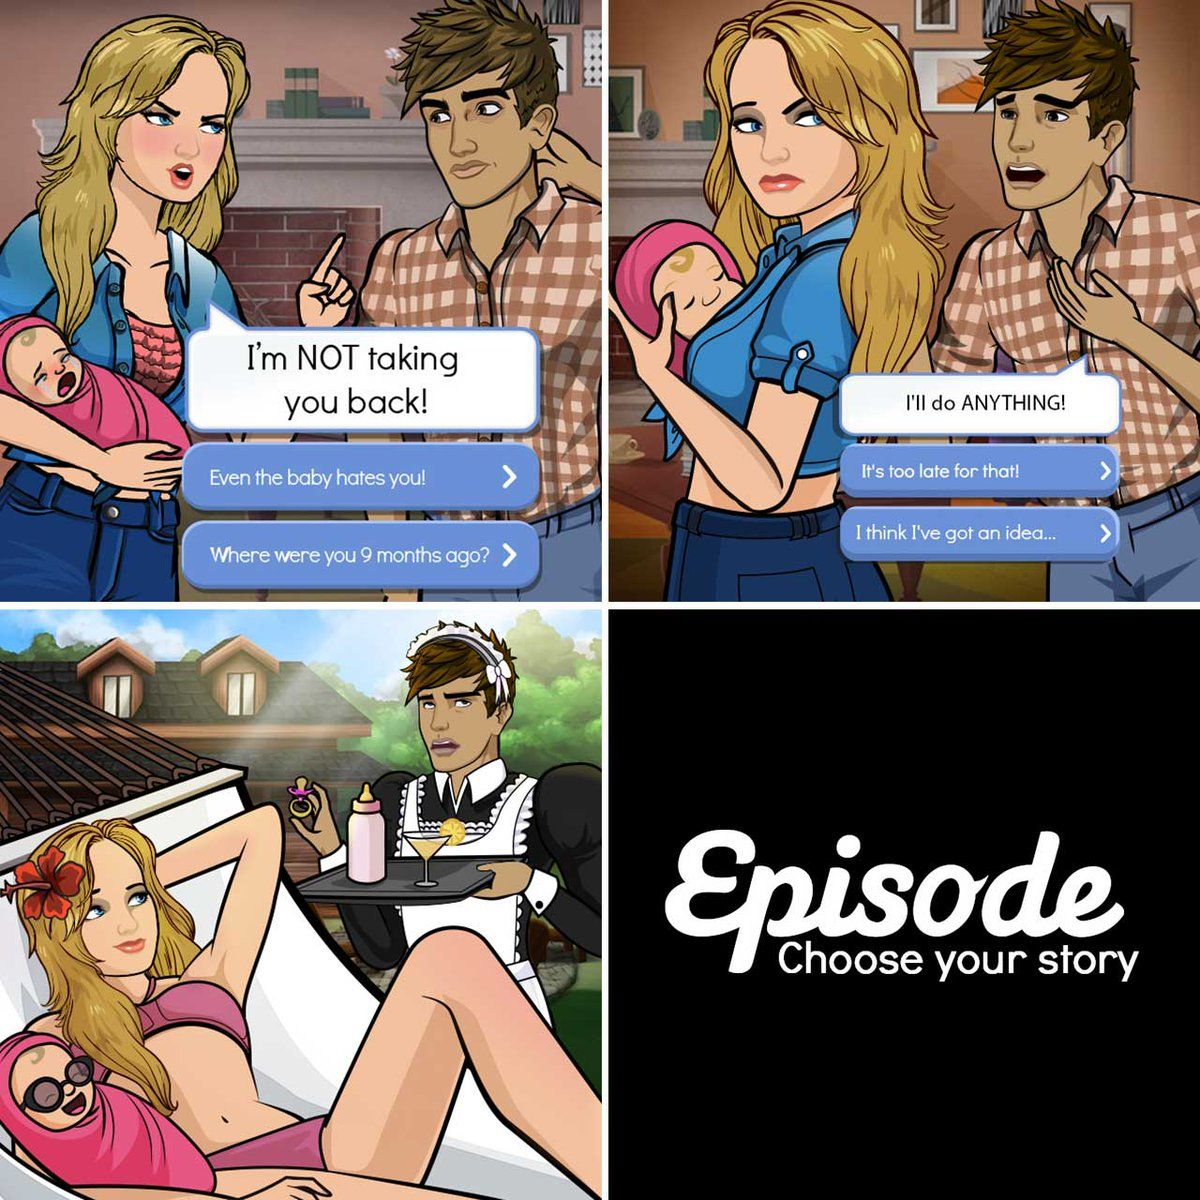 f35af0b3cb9ddcce1fe798a69327b3bd - Episode Mod Apk V14.80 Unlimited Gems And Passes